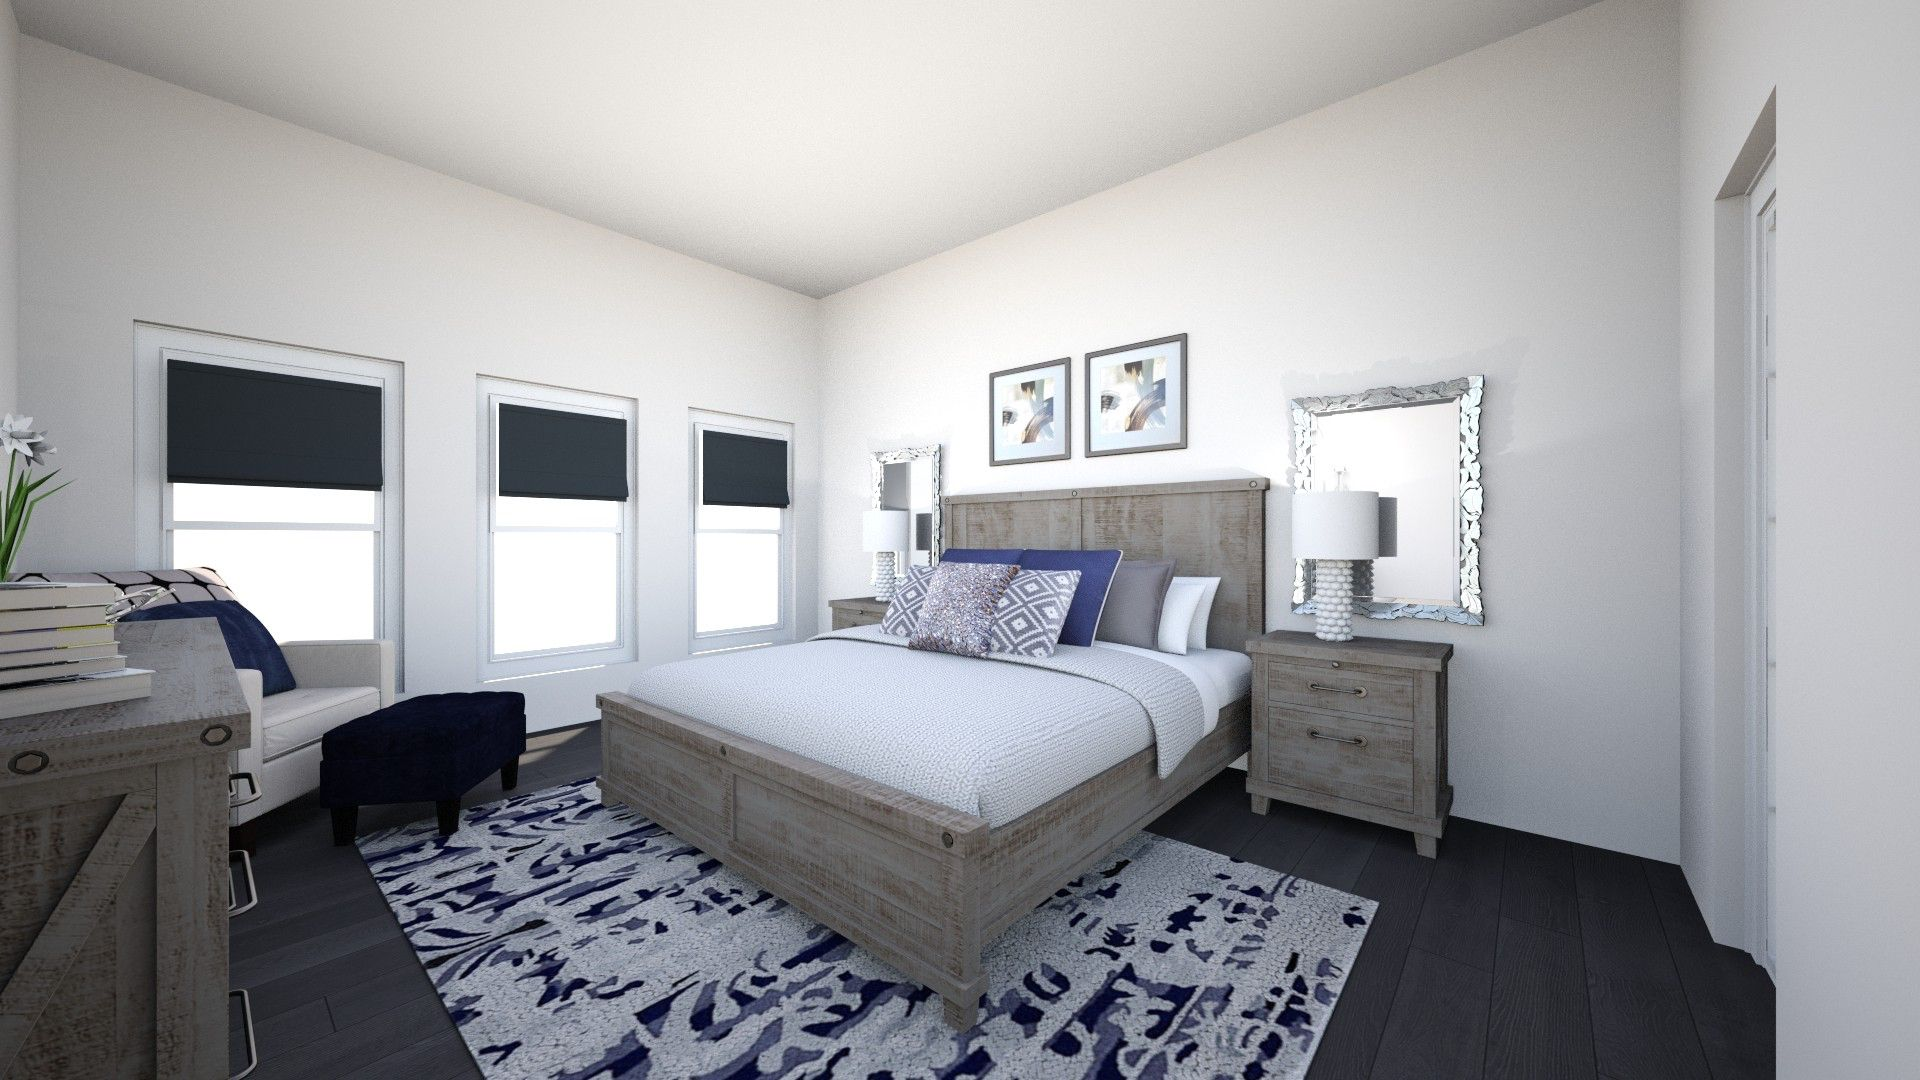 Interior Design Buffalo Ny Home Staging Signature Staging Buffal S Bedroom Design Inspiration Interior Design Bedroom Design